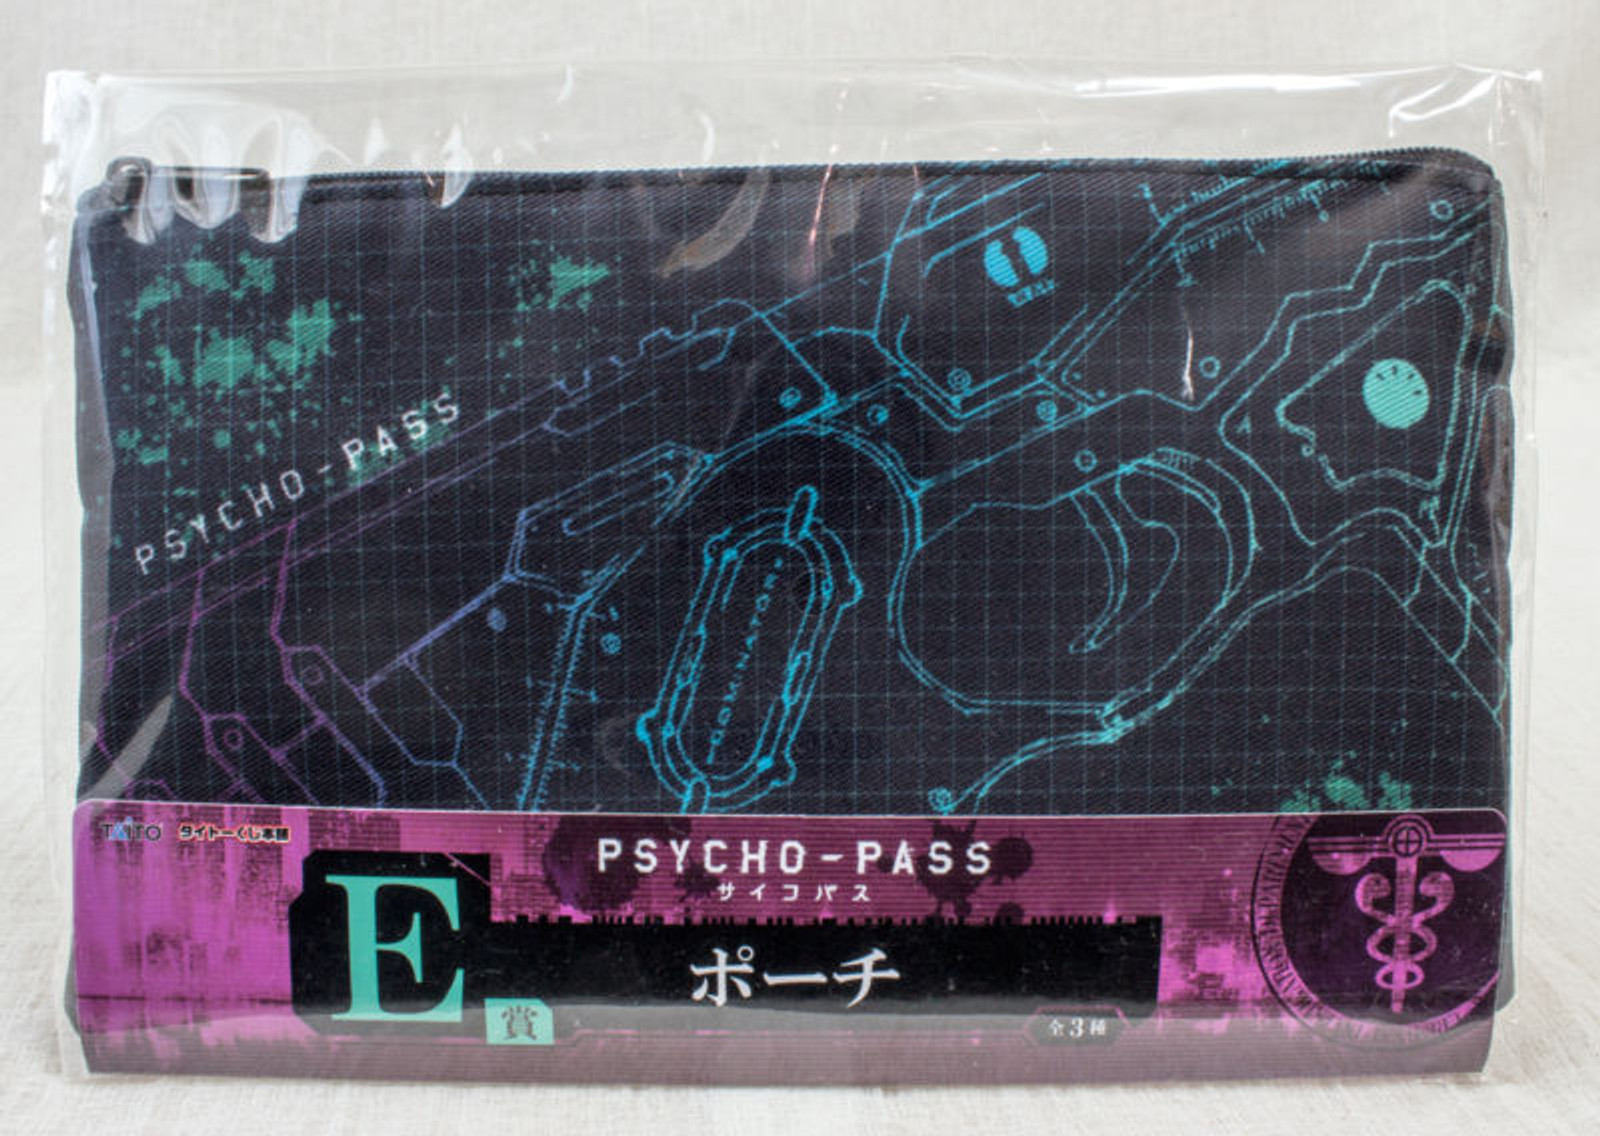 Psycho-Pass Dominator Ver. Pouch Mini Bag Taito Kuji JAPAN ANIME